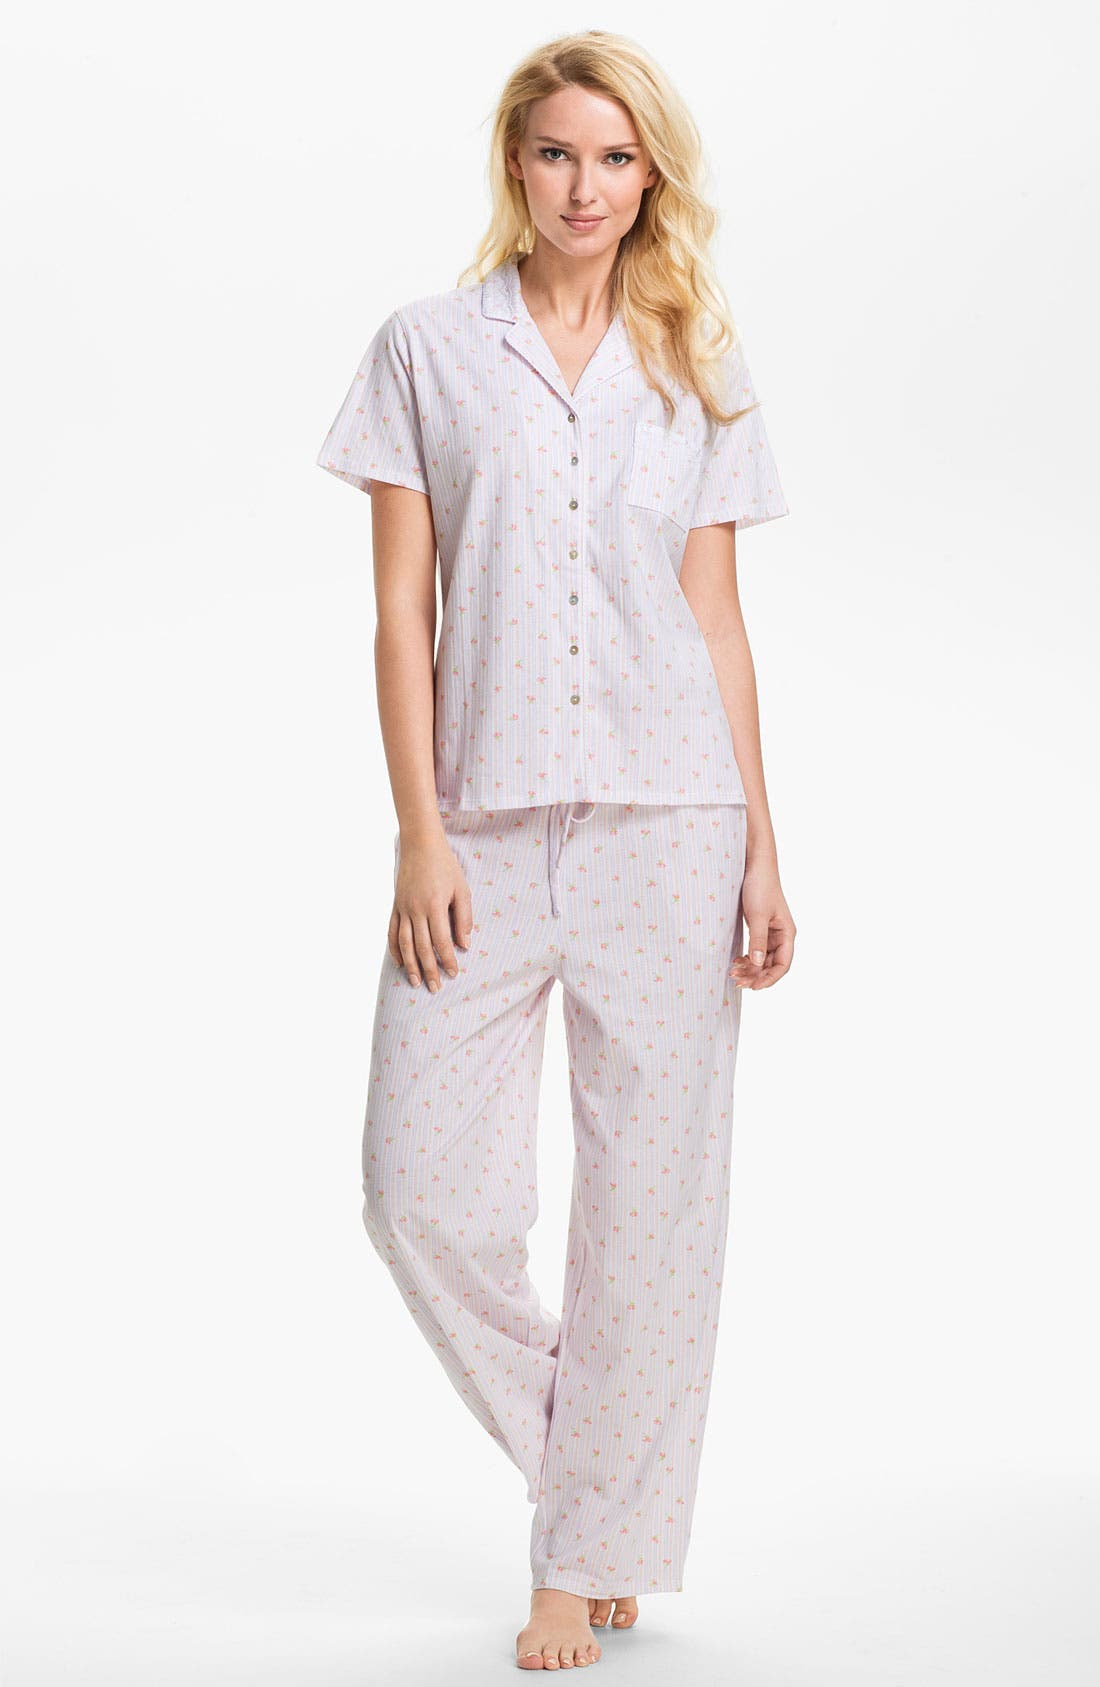 Main Image - Eileen West 'Pastoral Beauty' Pajamas